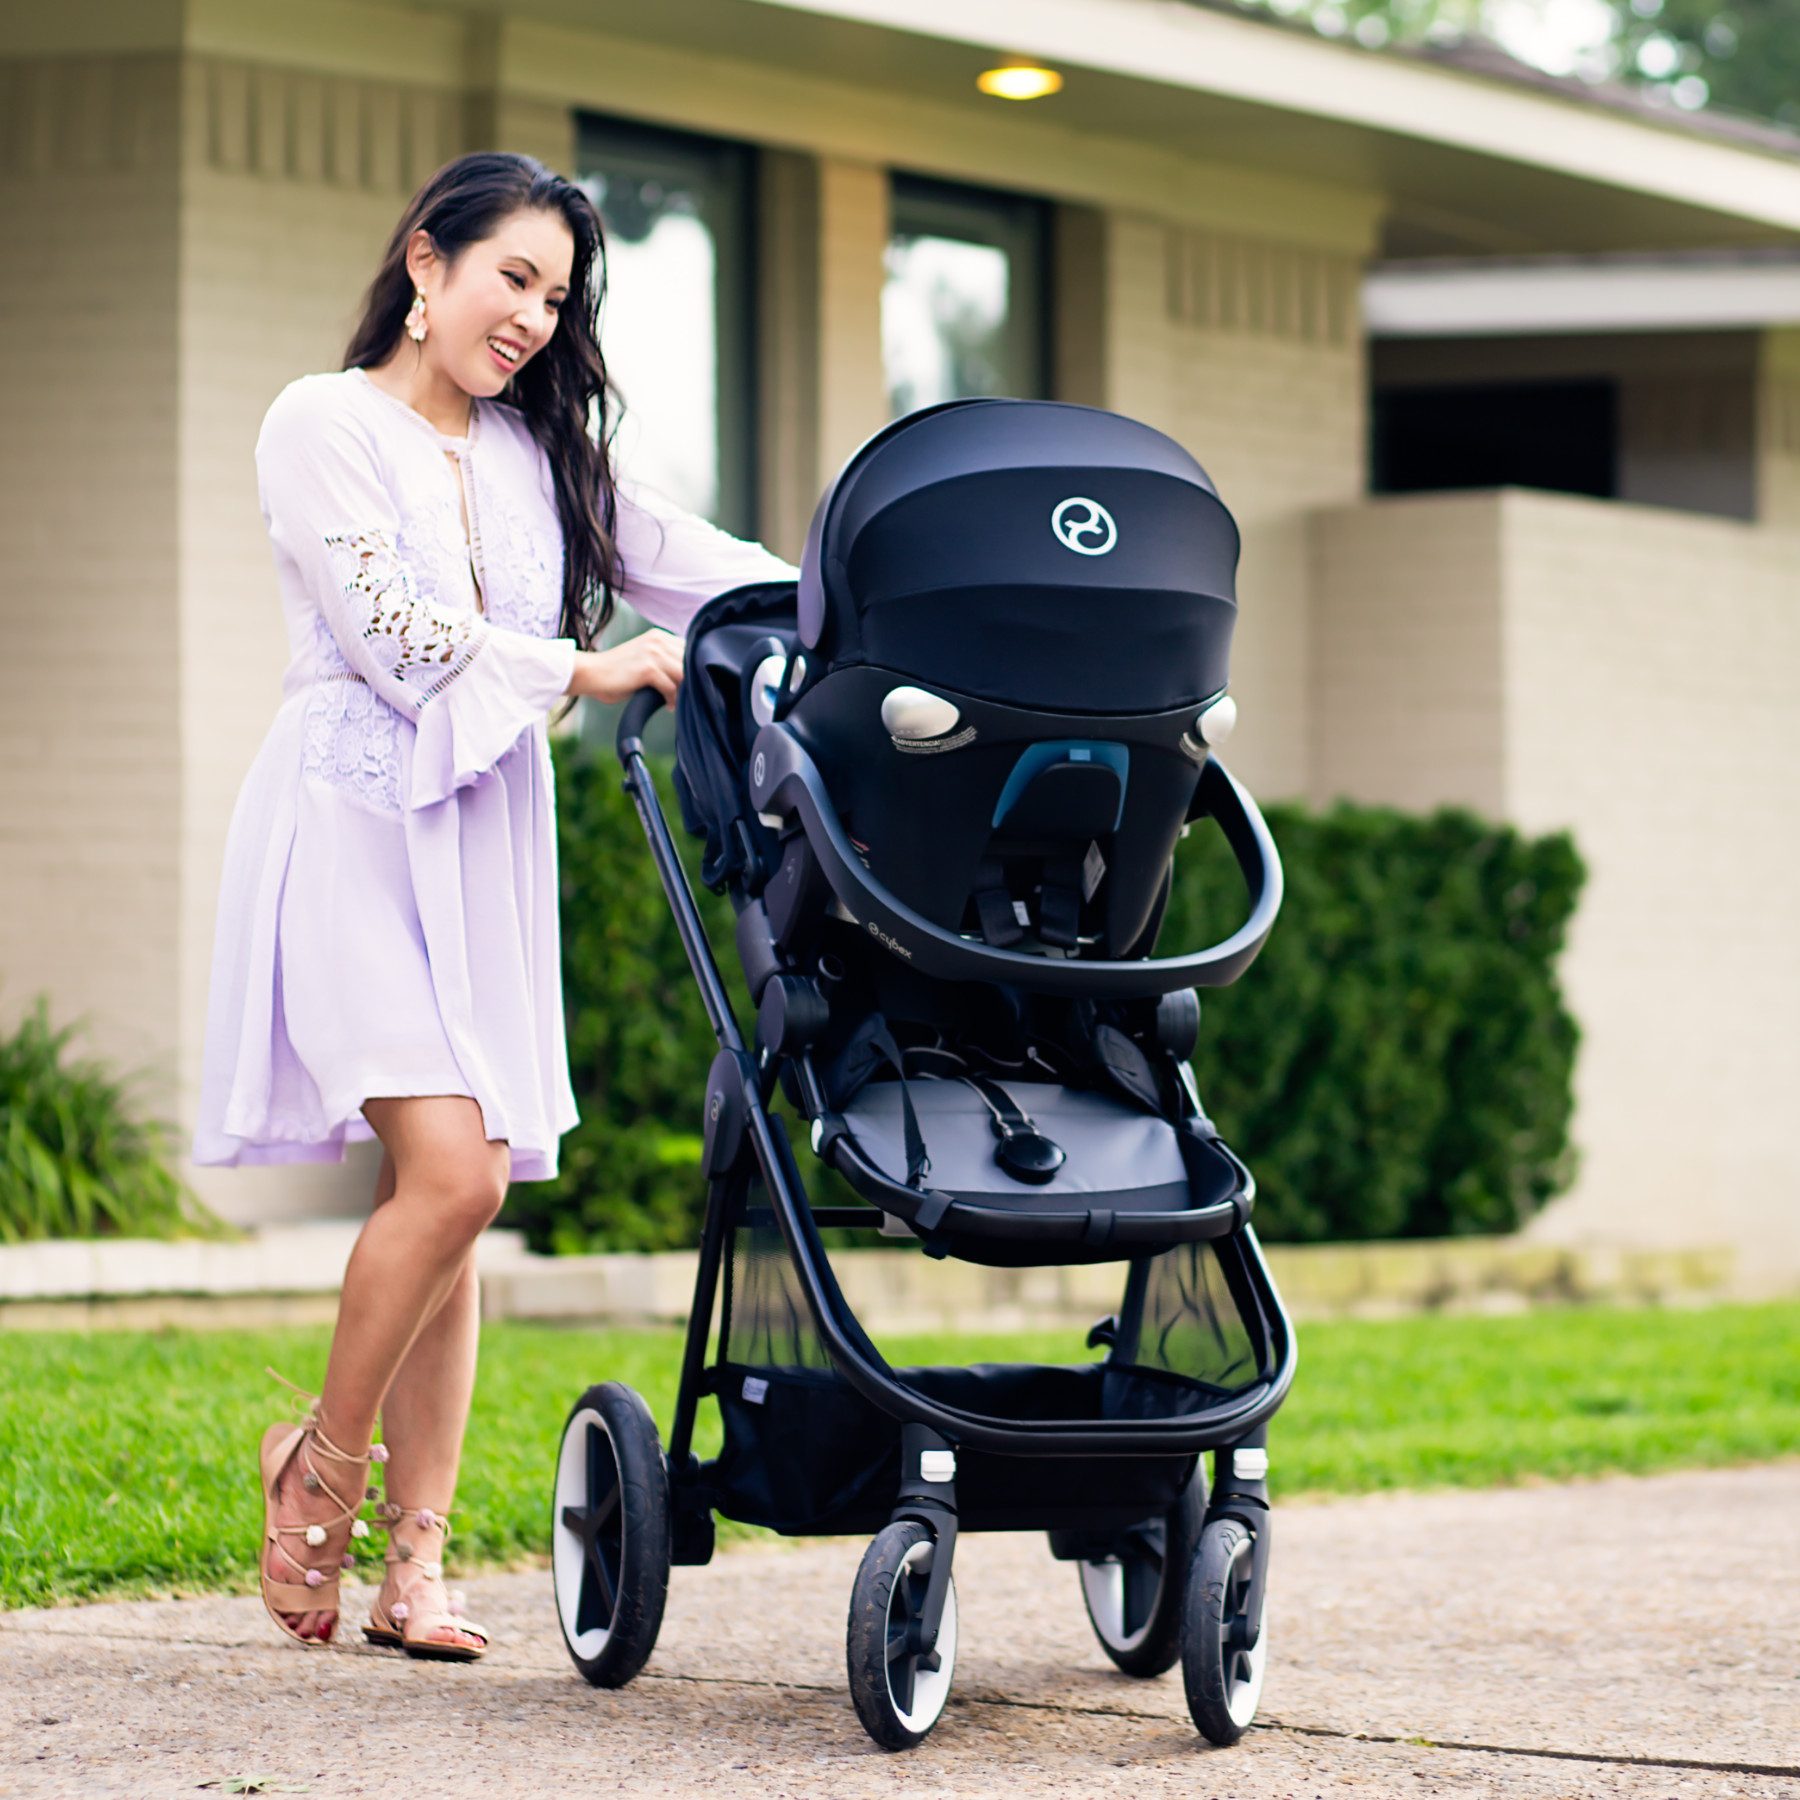 Car Seat Stroller Travel System Reviews Safety First With Cybex Cute Little Dallas Petite